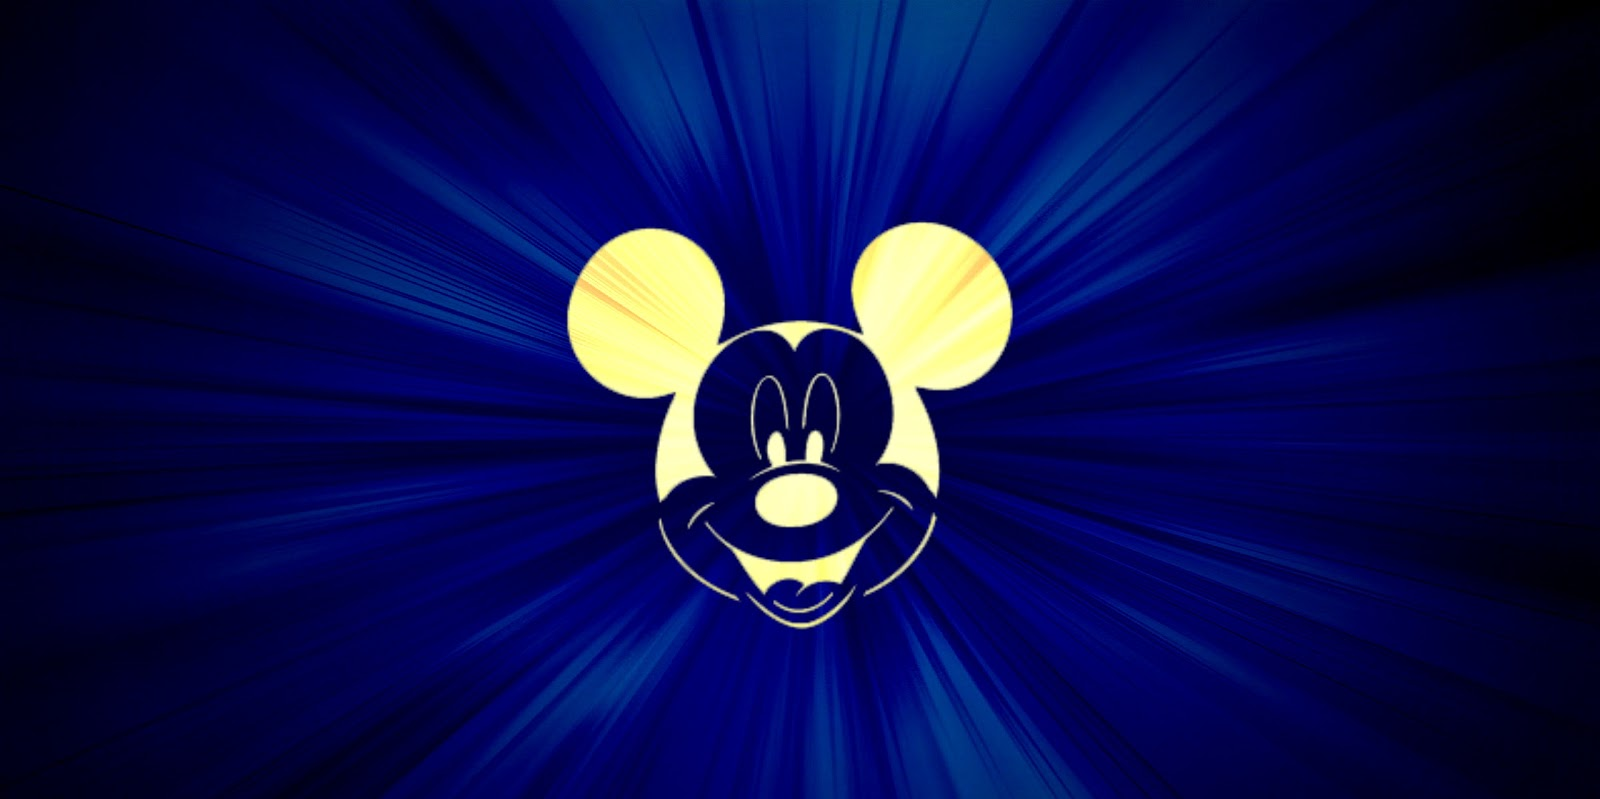 Free Mickey Mouse Wallpapers